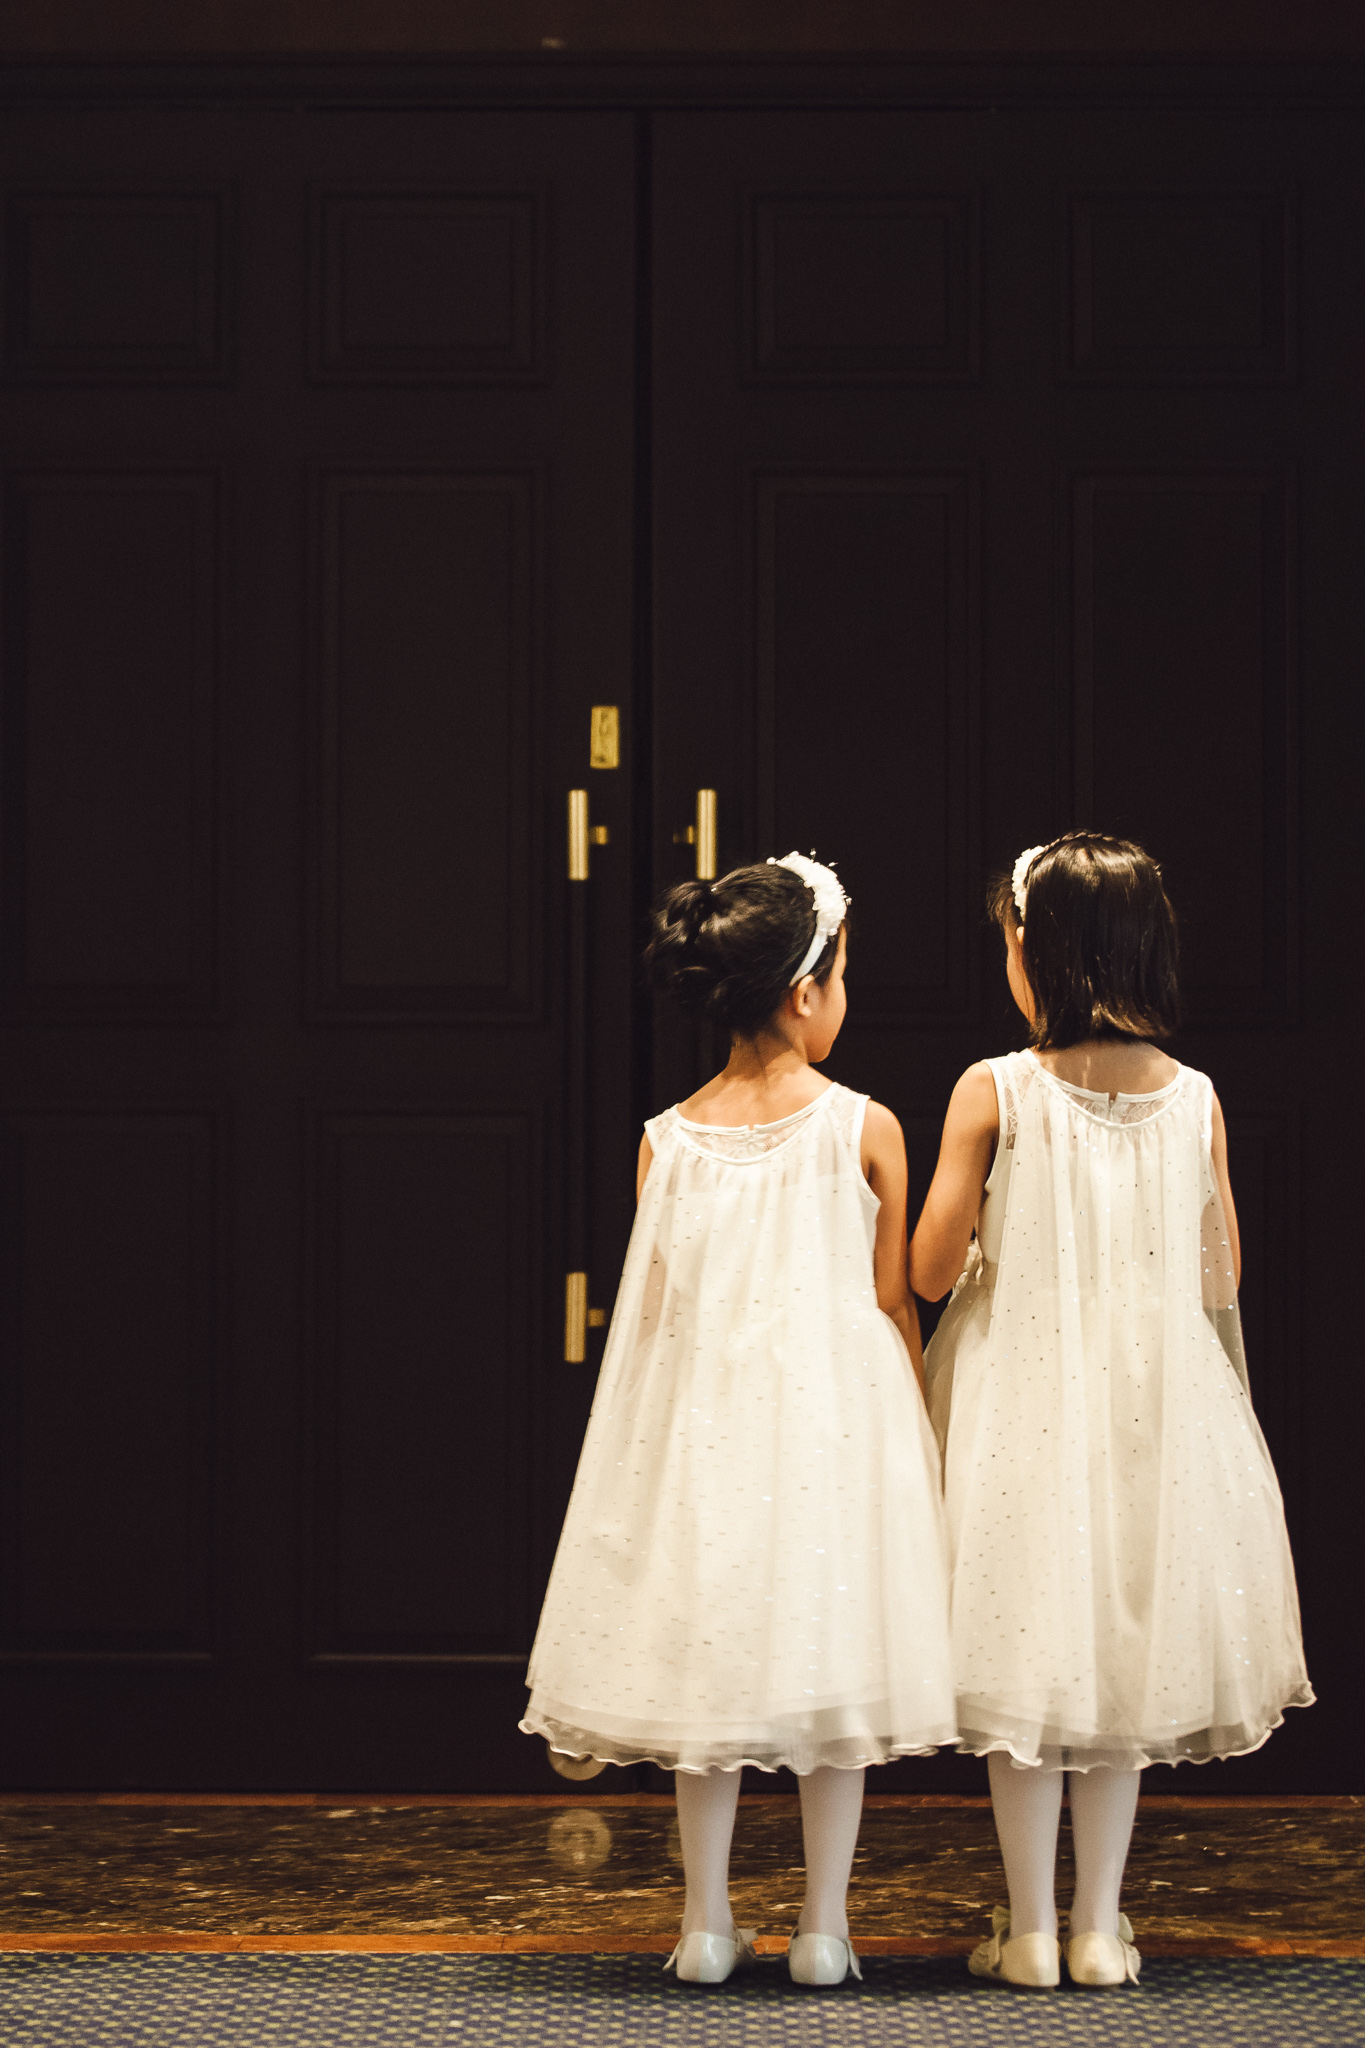 Shiwei & Chee Chin Wedding Day Highlights (resized for sharing) -169.jpg